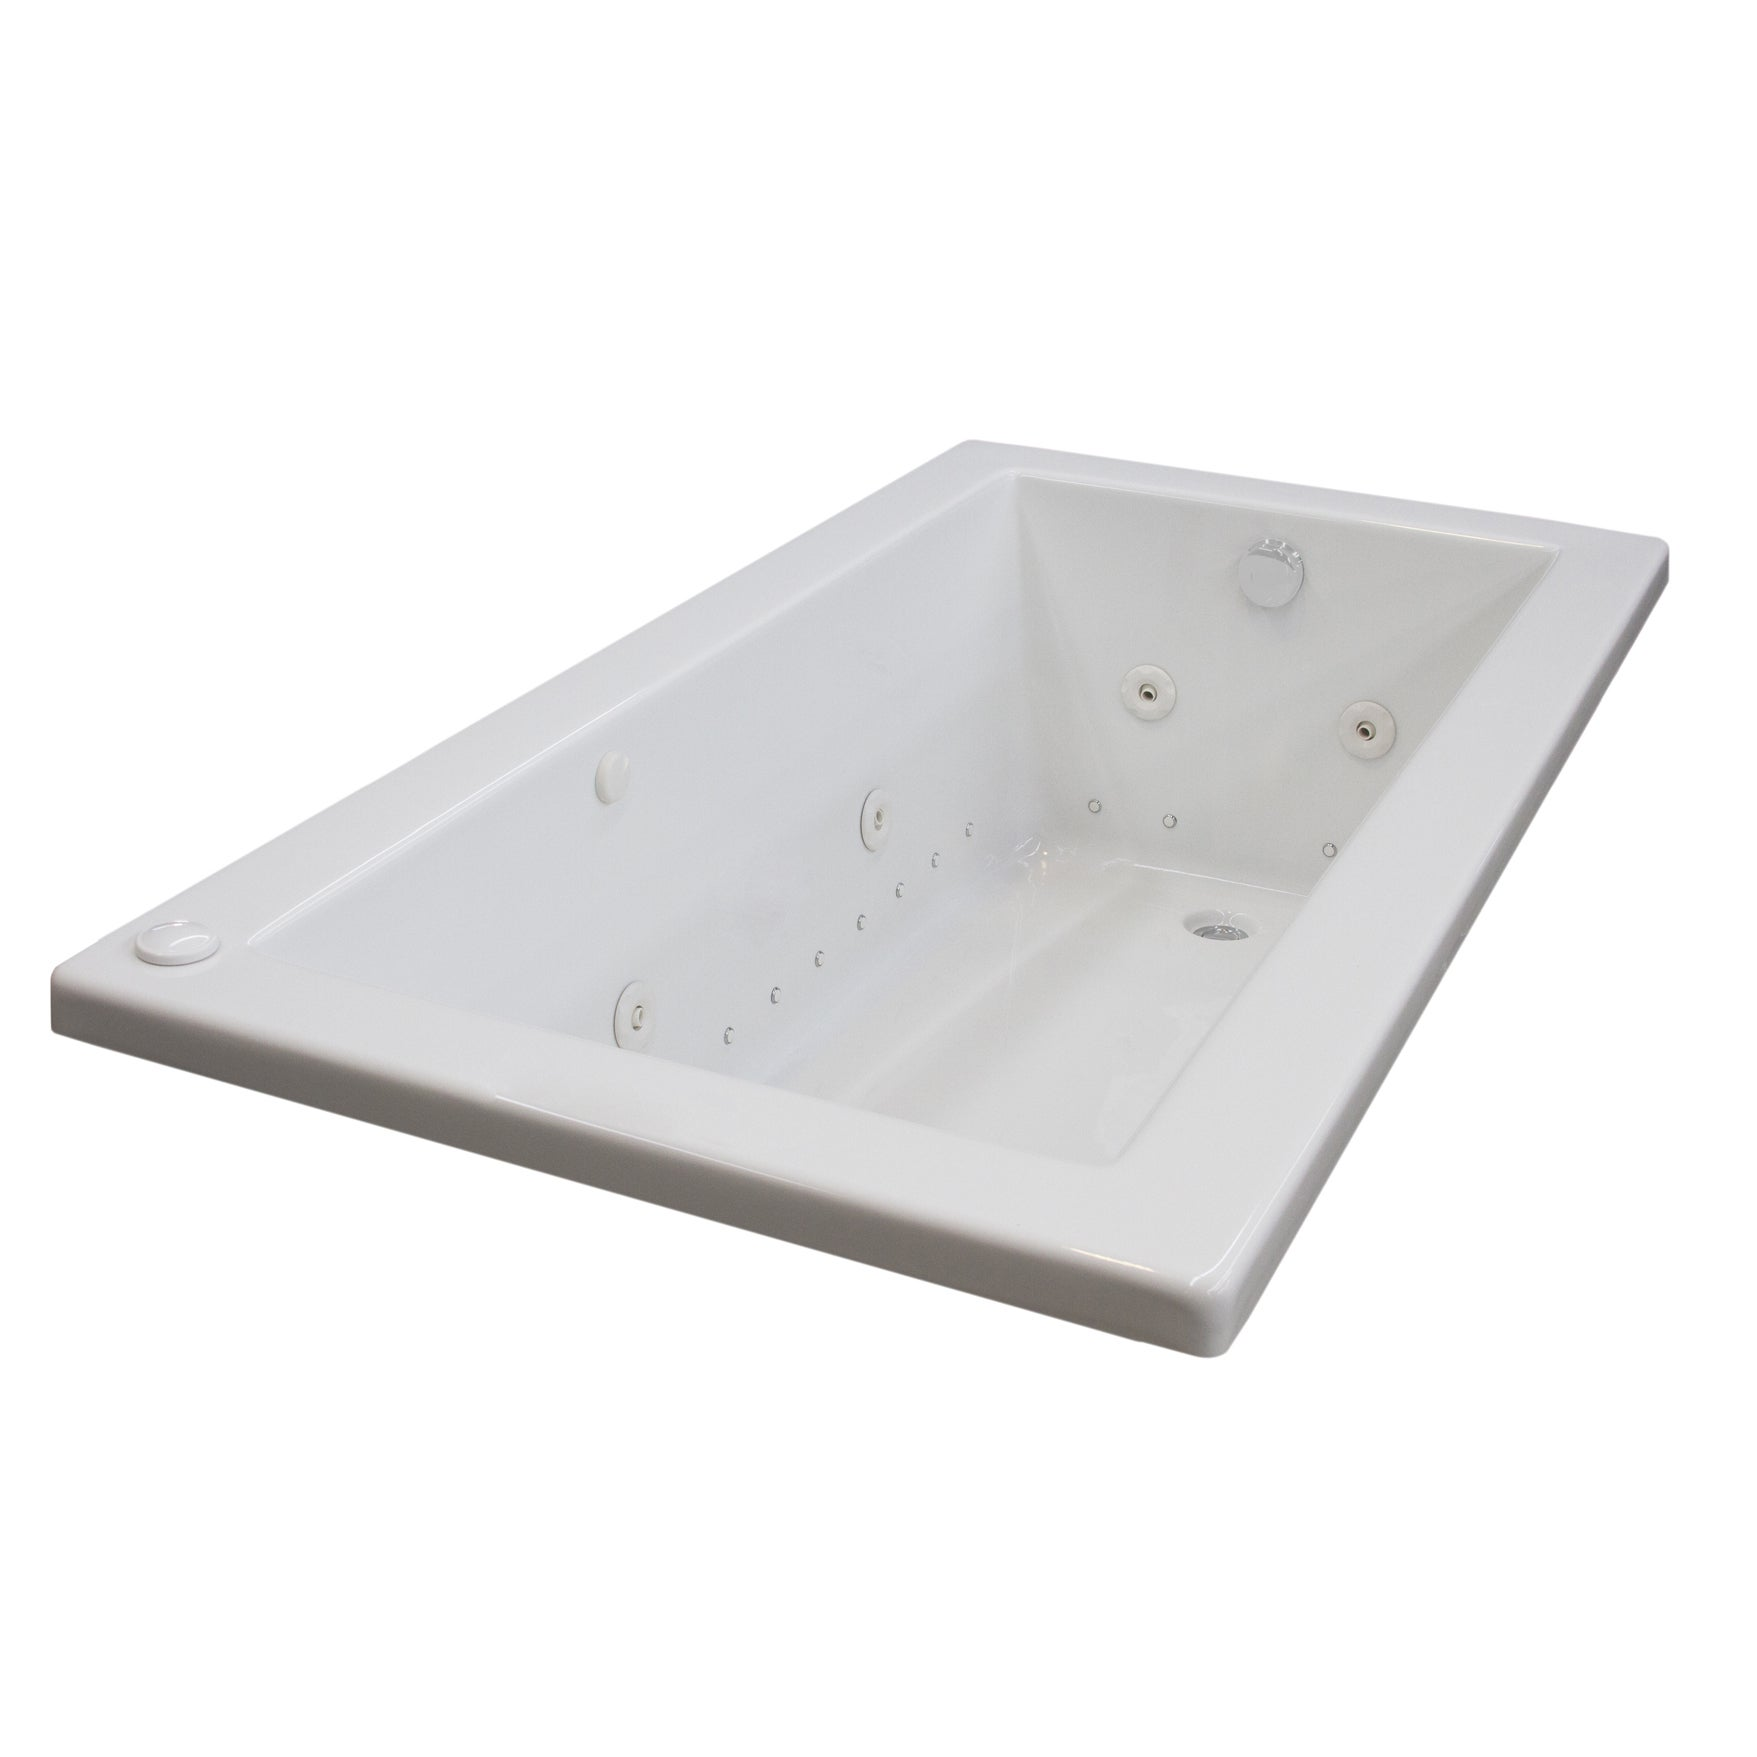 Atlantis Whirlpools Venetian 30 X 60 Rectangular Air U0026 Whirlpool Jetted  Bathtub In White   Free Shipping Today   Overstock.com   16145529